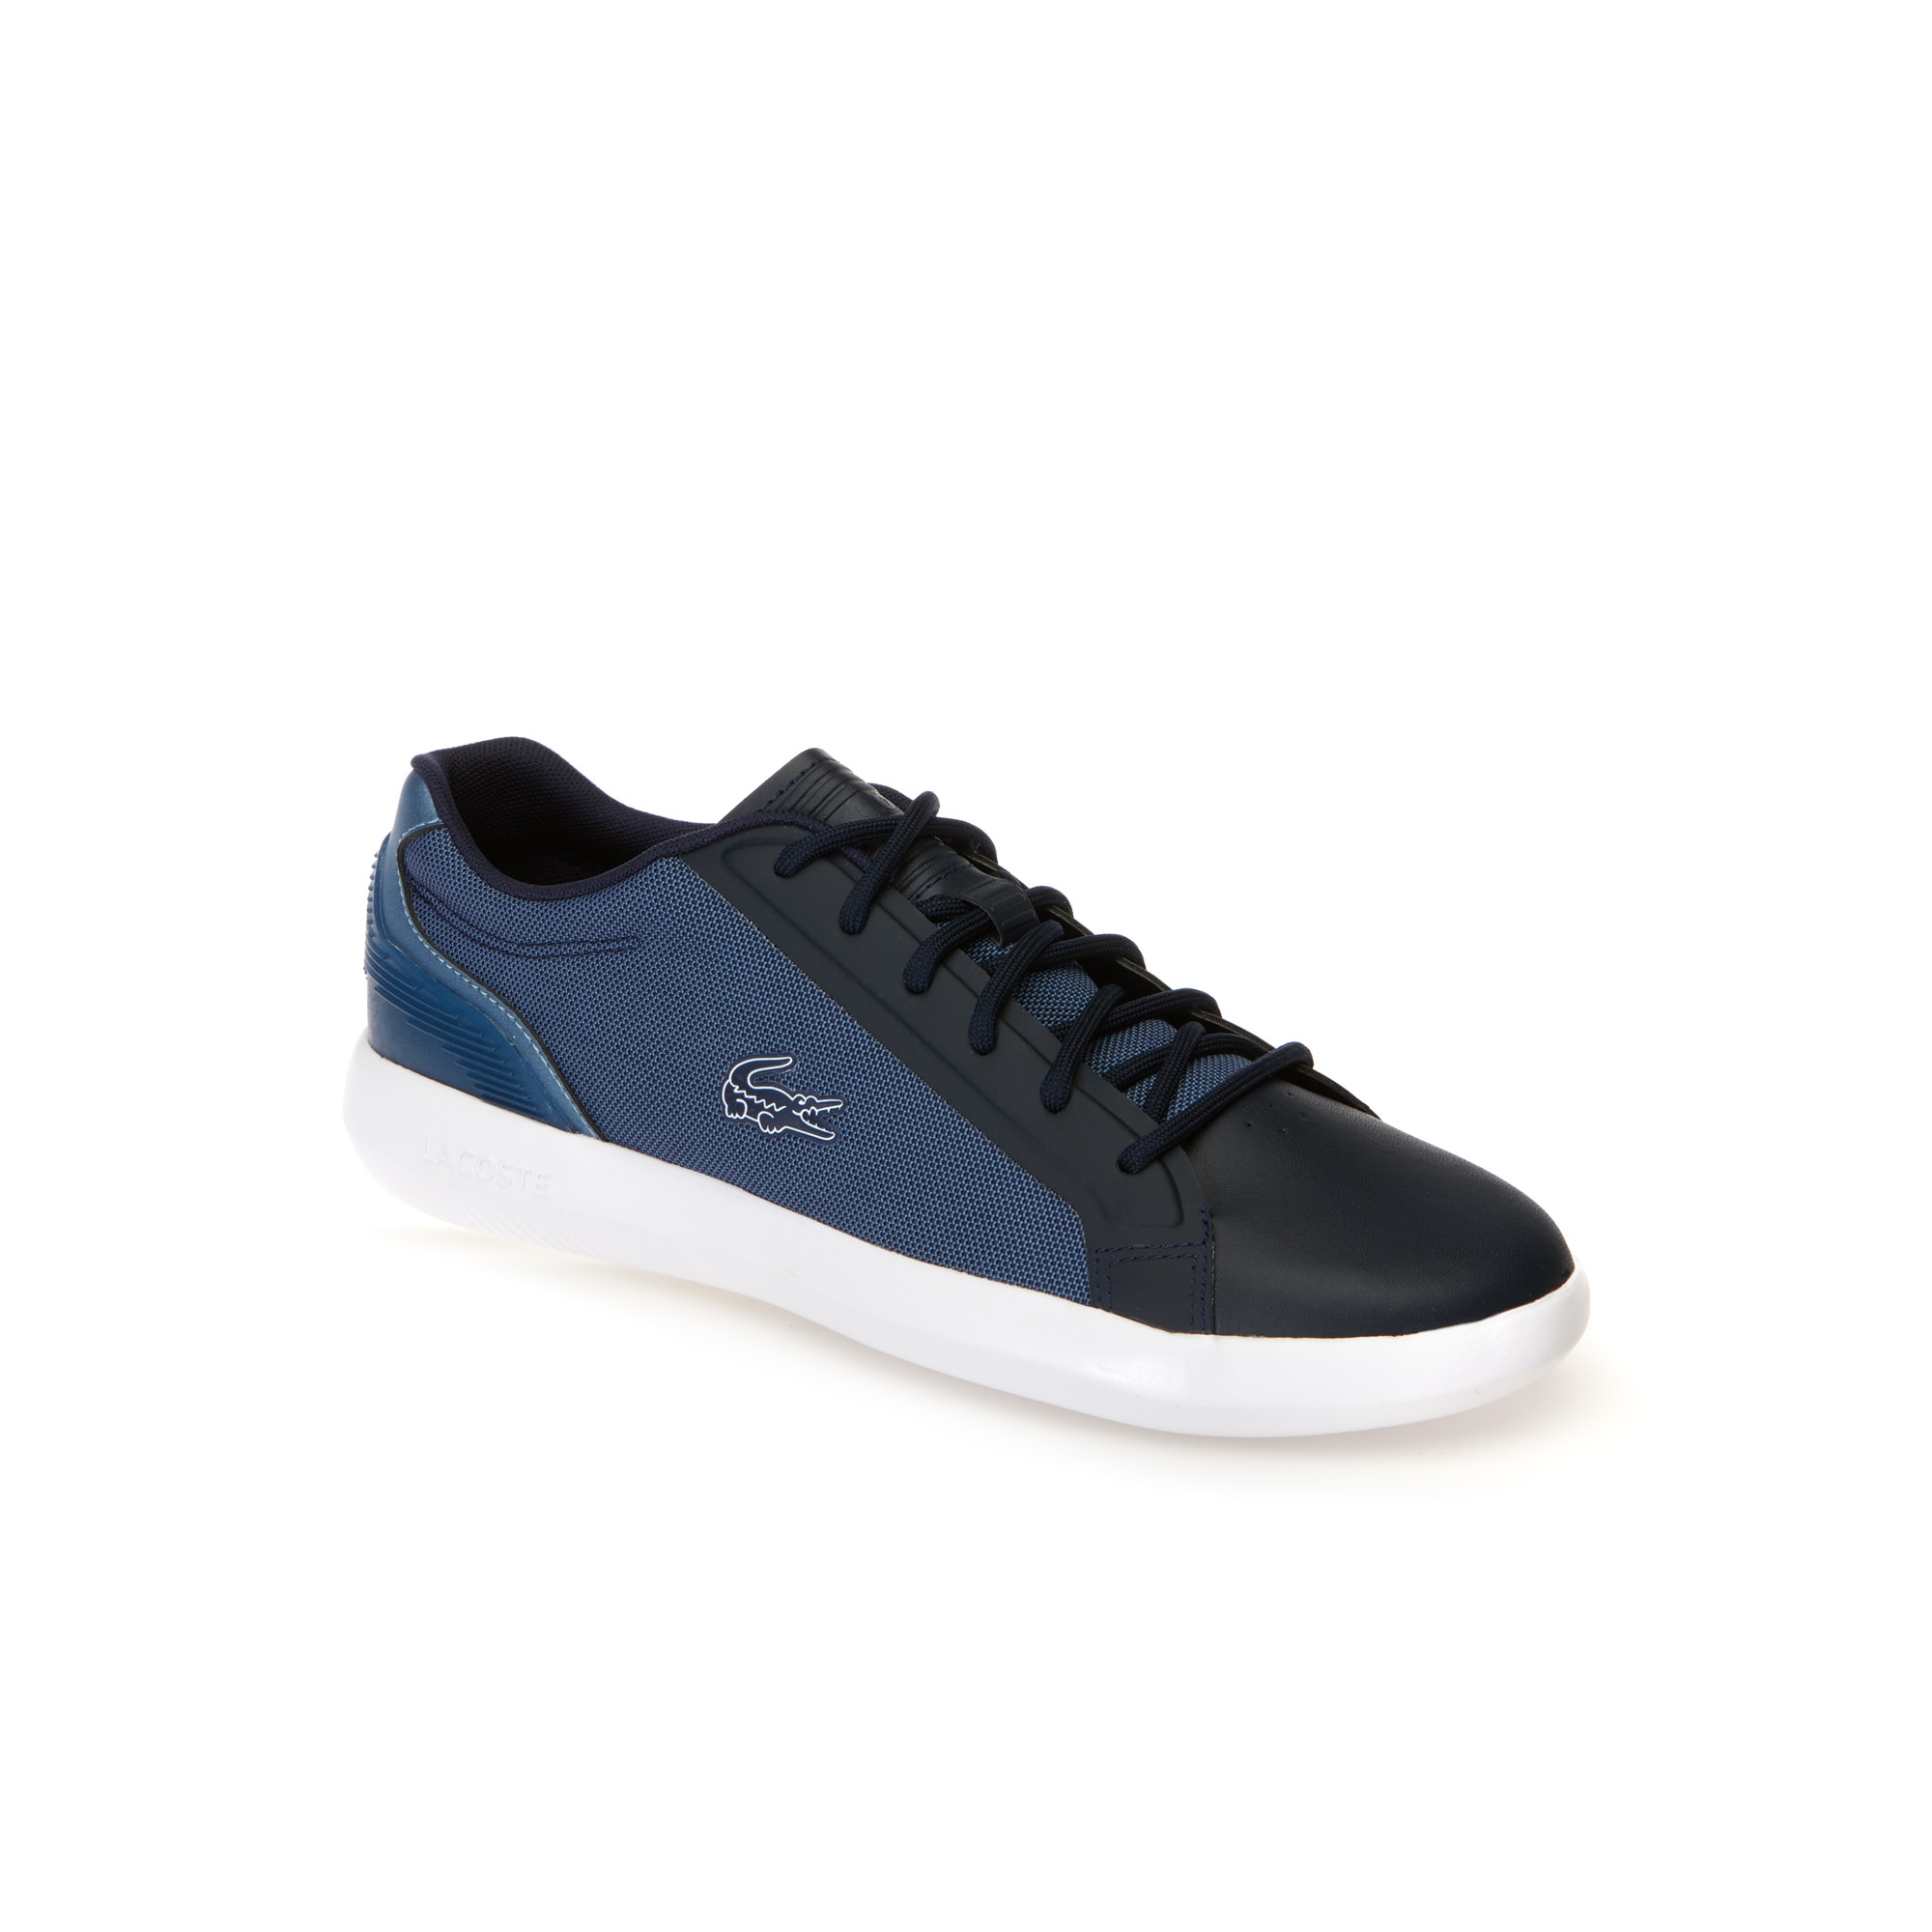 Men's Avantor Textile and Synthetic Trainers